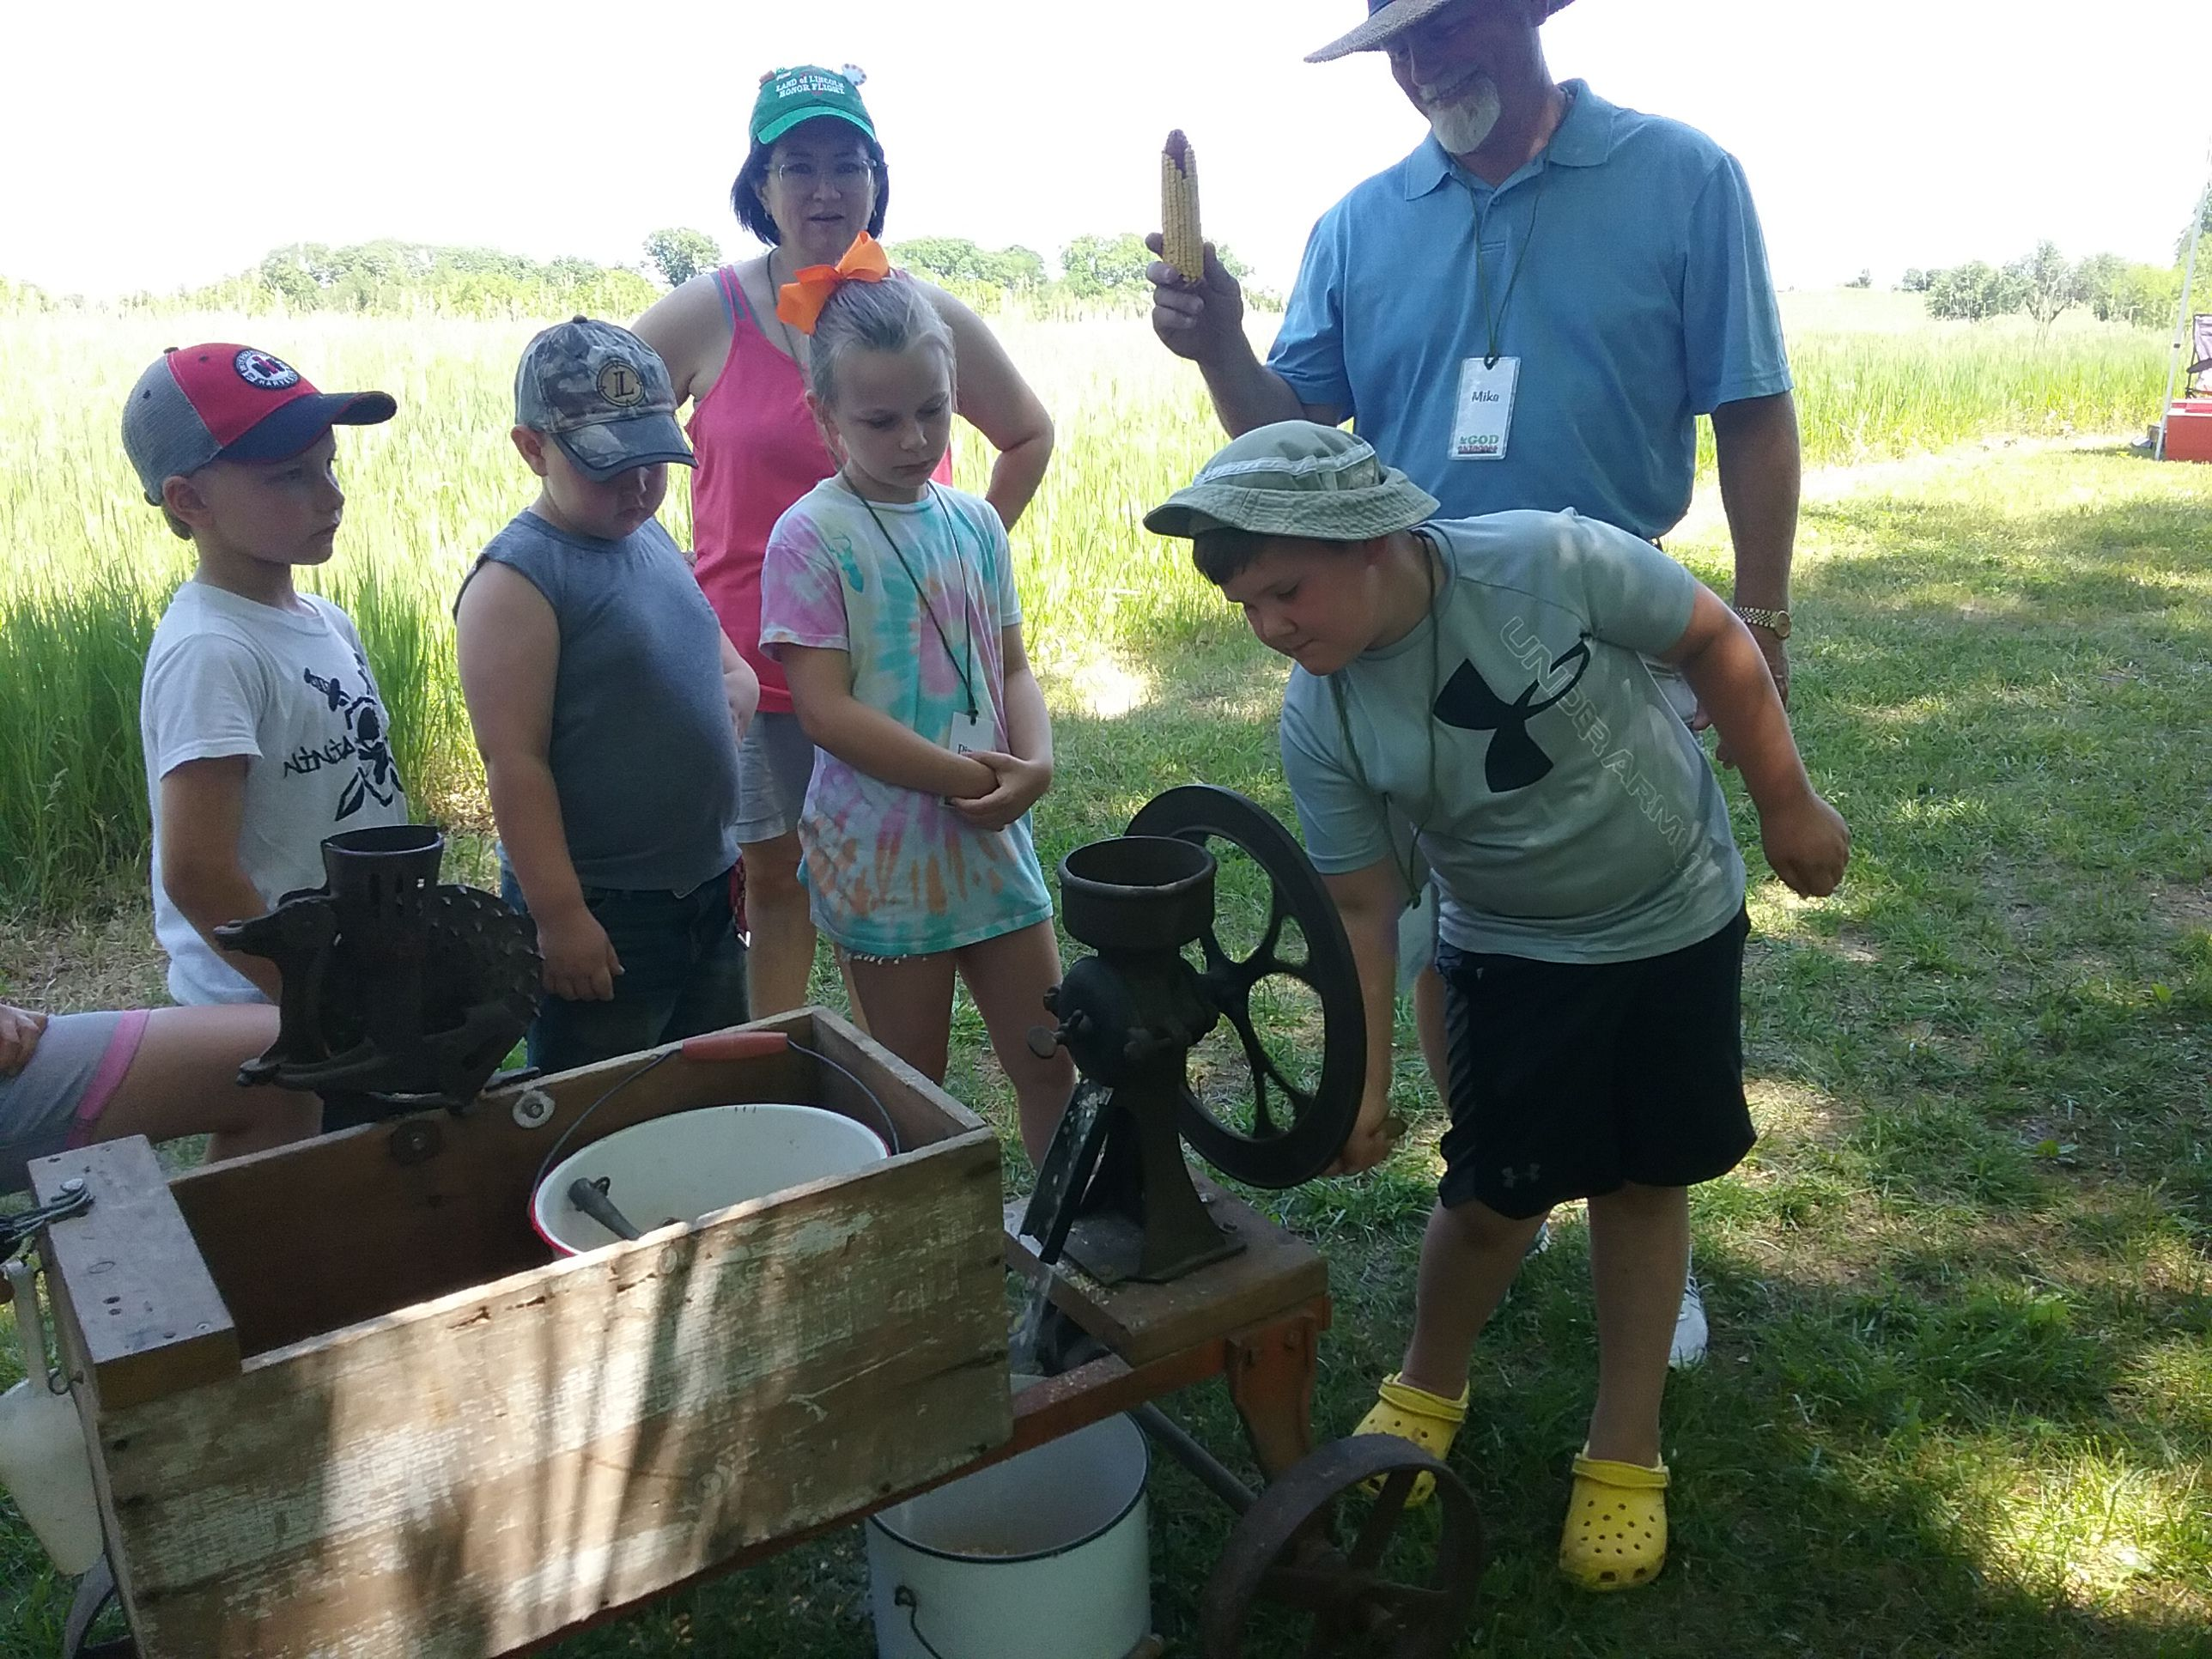 Grinding corn pioneer activity at Christian Day Camp held at Wells Barren Grove, Neponset.